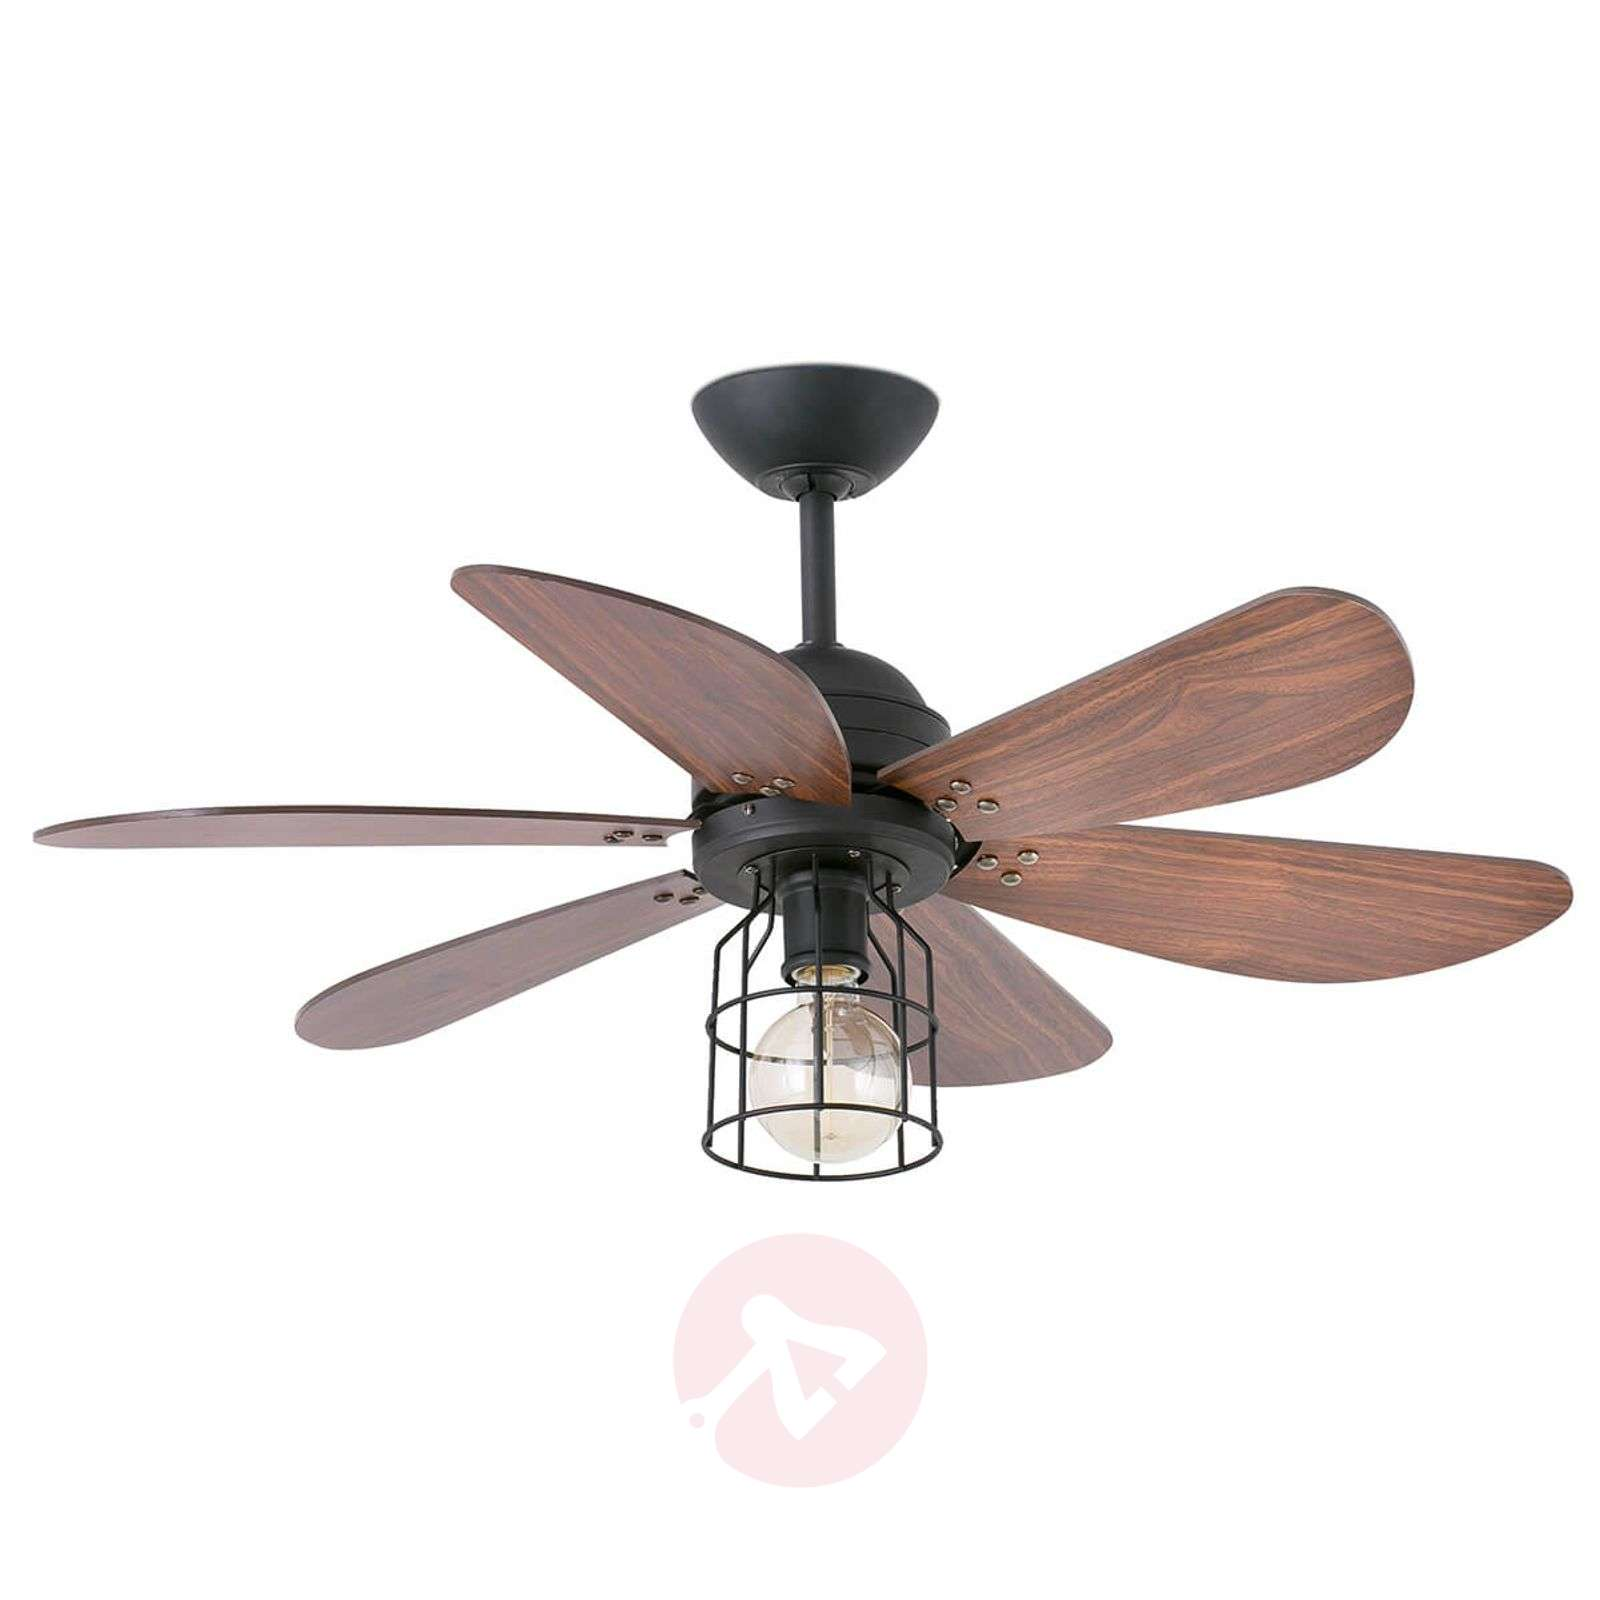 Chicago Lighting Company: Light With A Cage Design- Ceiling Fan Chicago